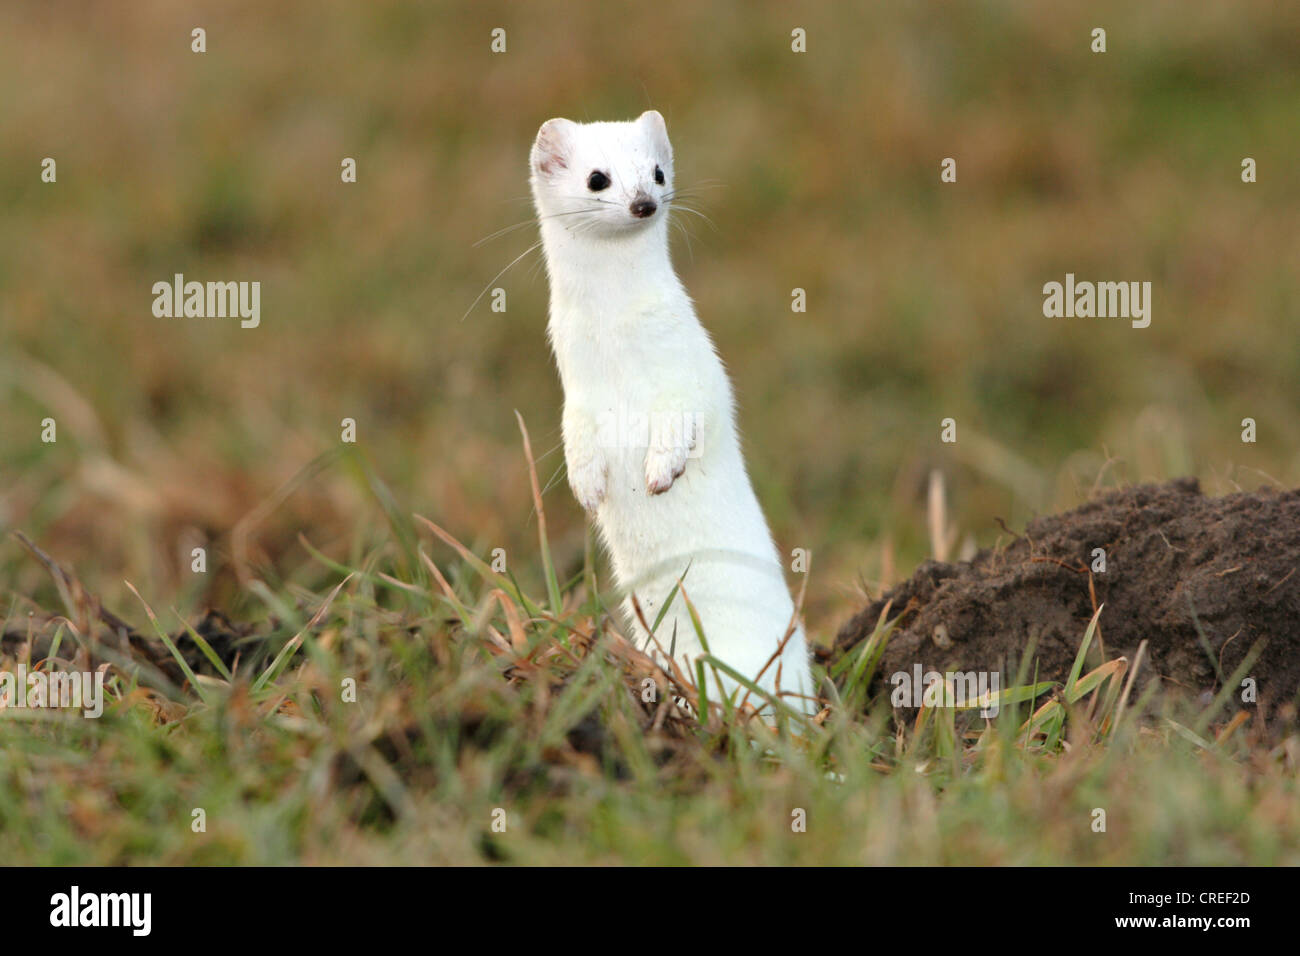 ermine, stoat (Mustela erminea), standing upright in winter fur, Germany, Bavaria - Stock Image